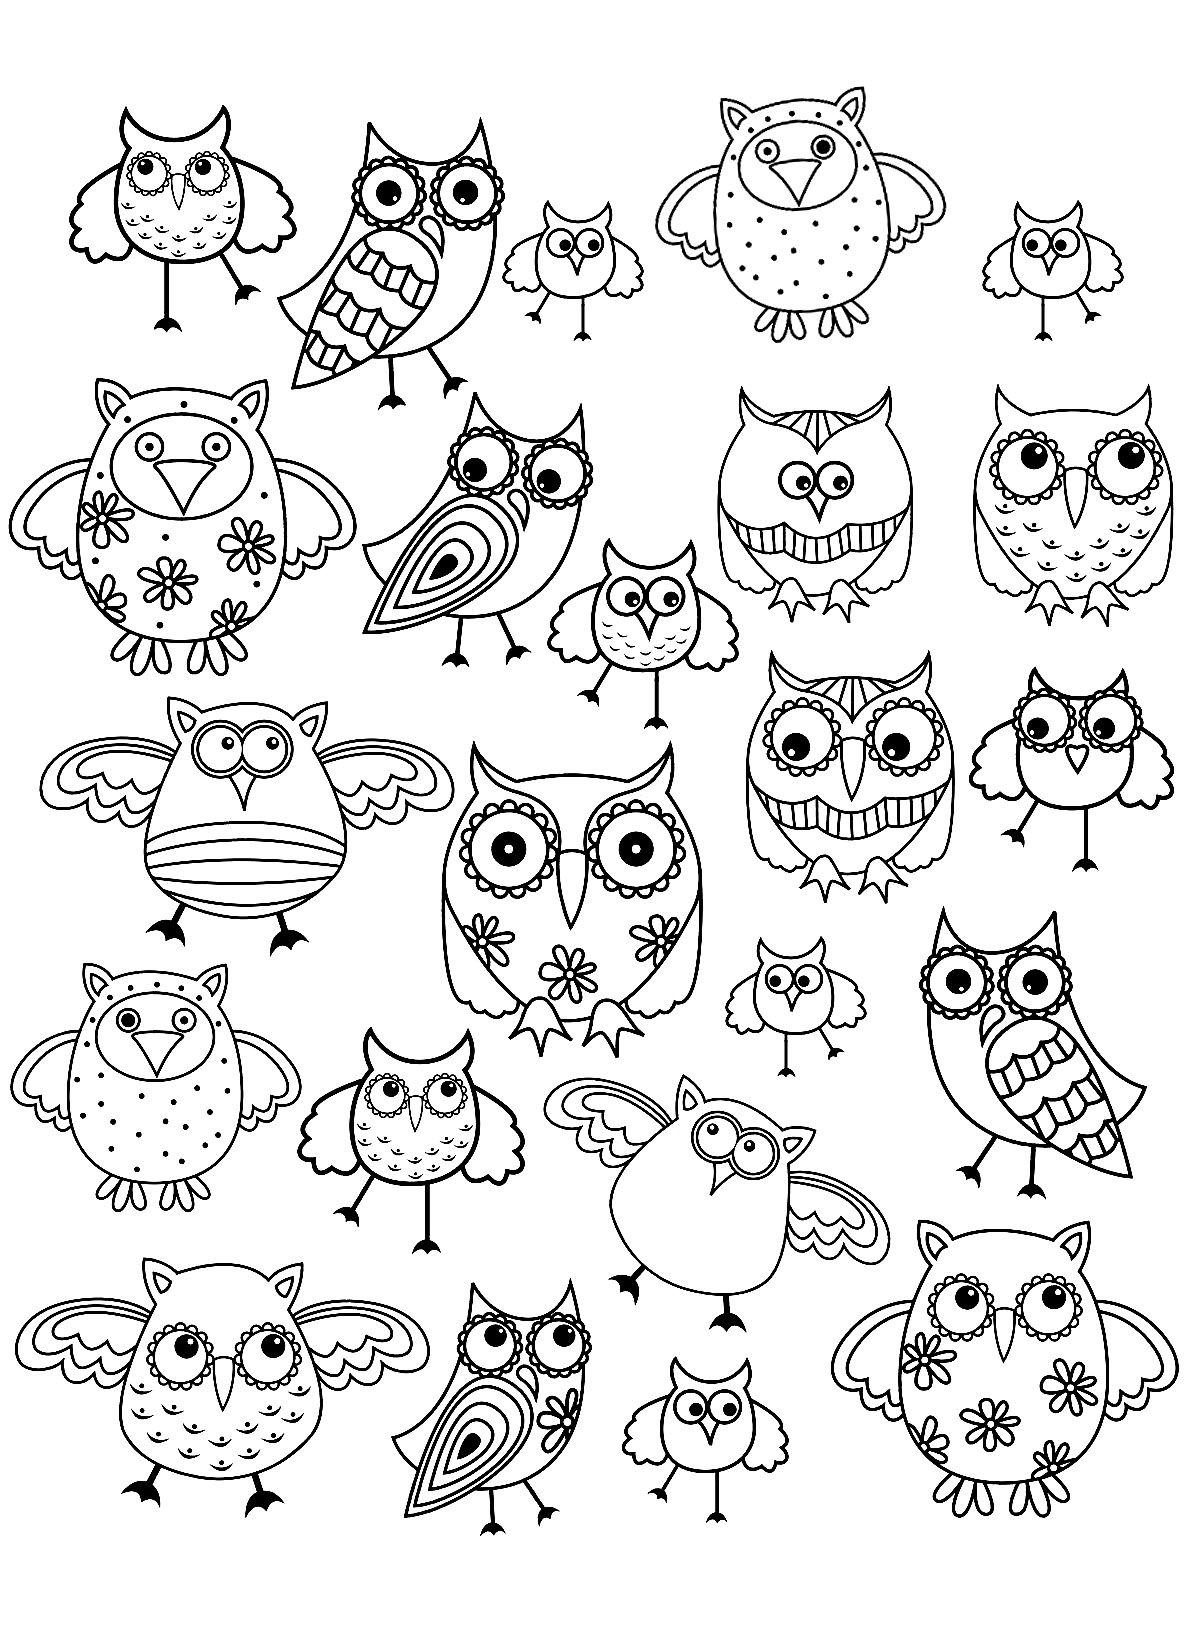 Doodle Owl Doodle Art Doodling Coloring Pages For Adults